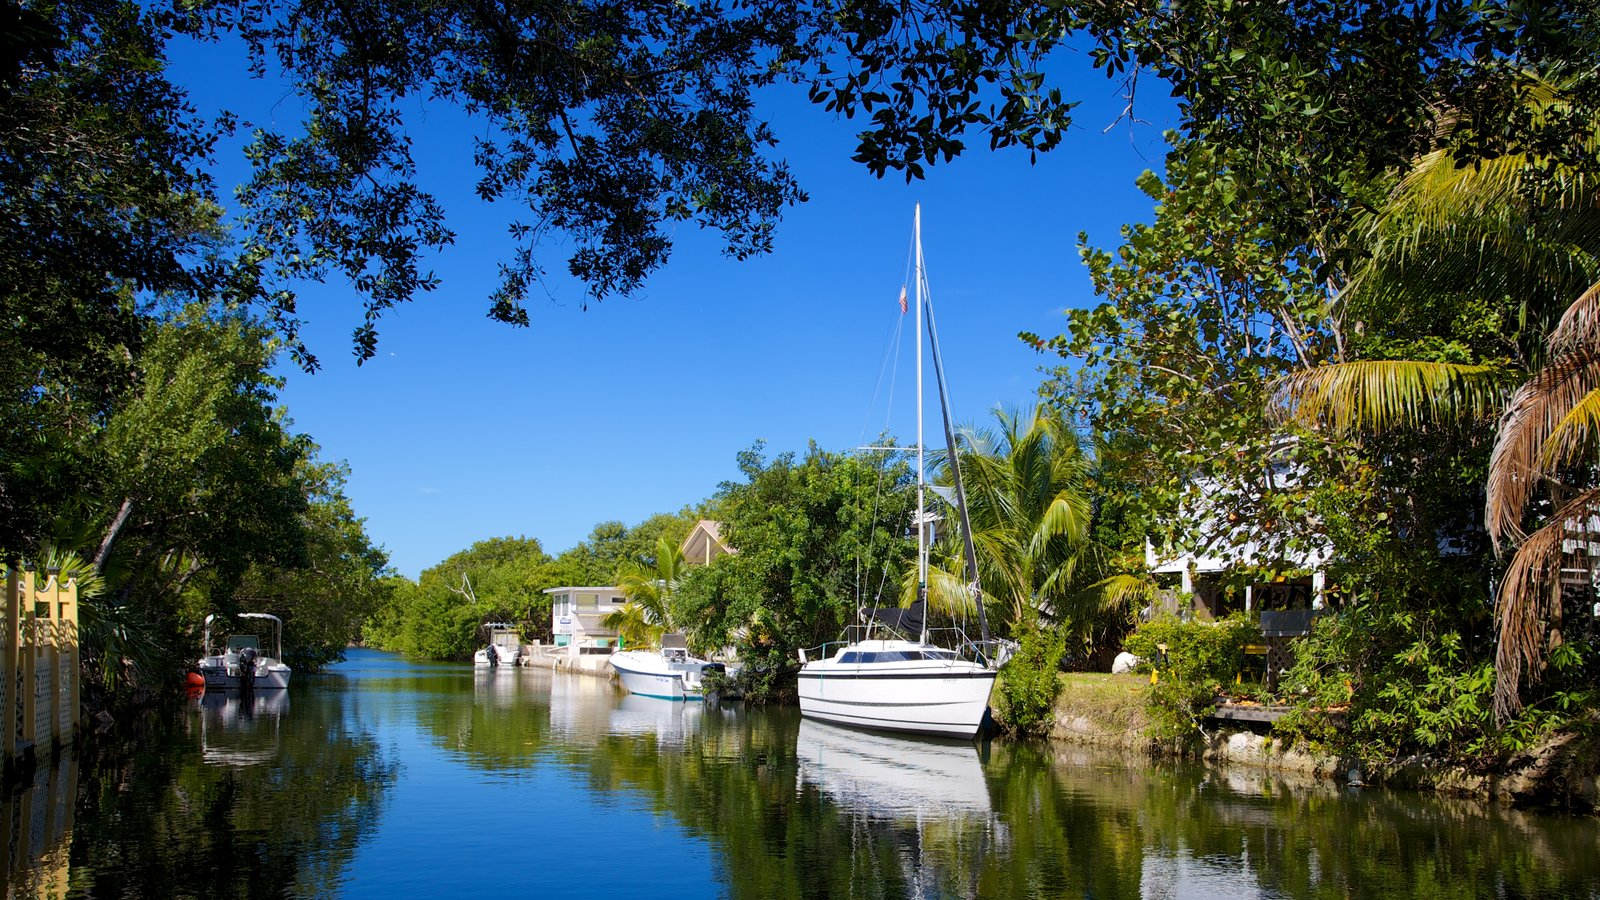 meet big pine key singles Looking for big pine key, fl single-family homes browse through 26 single-family homes for sale in big pine key, fl with prices between $269,000 and $1,699,999.